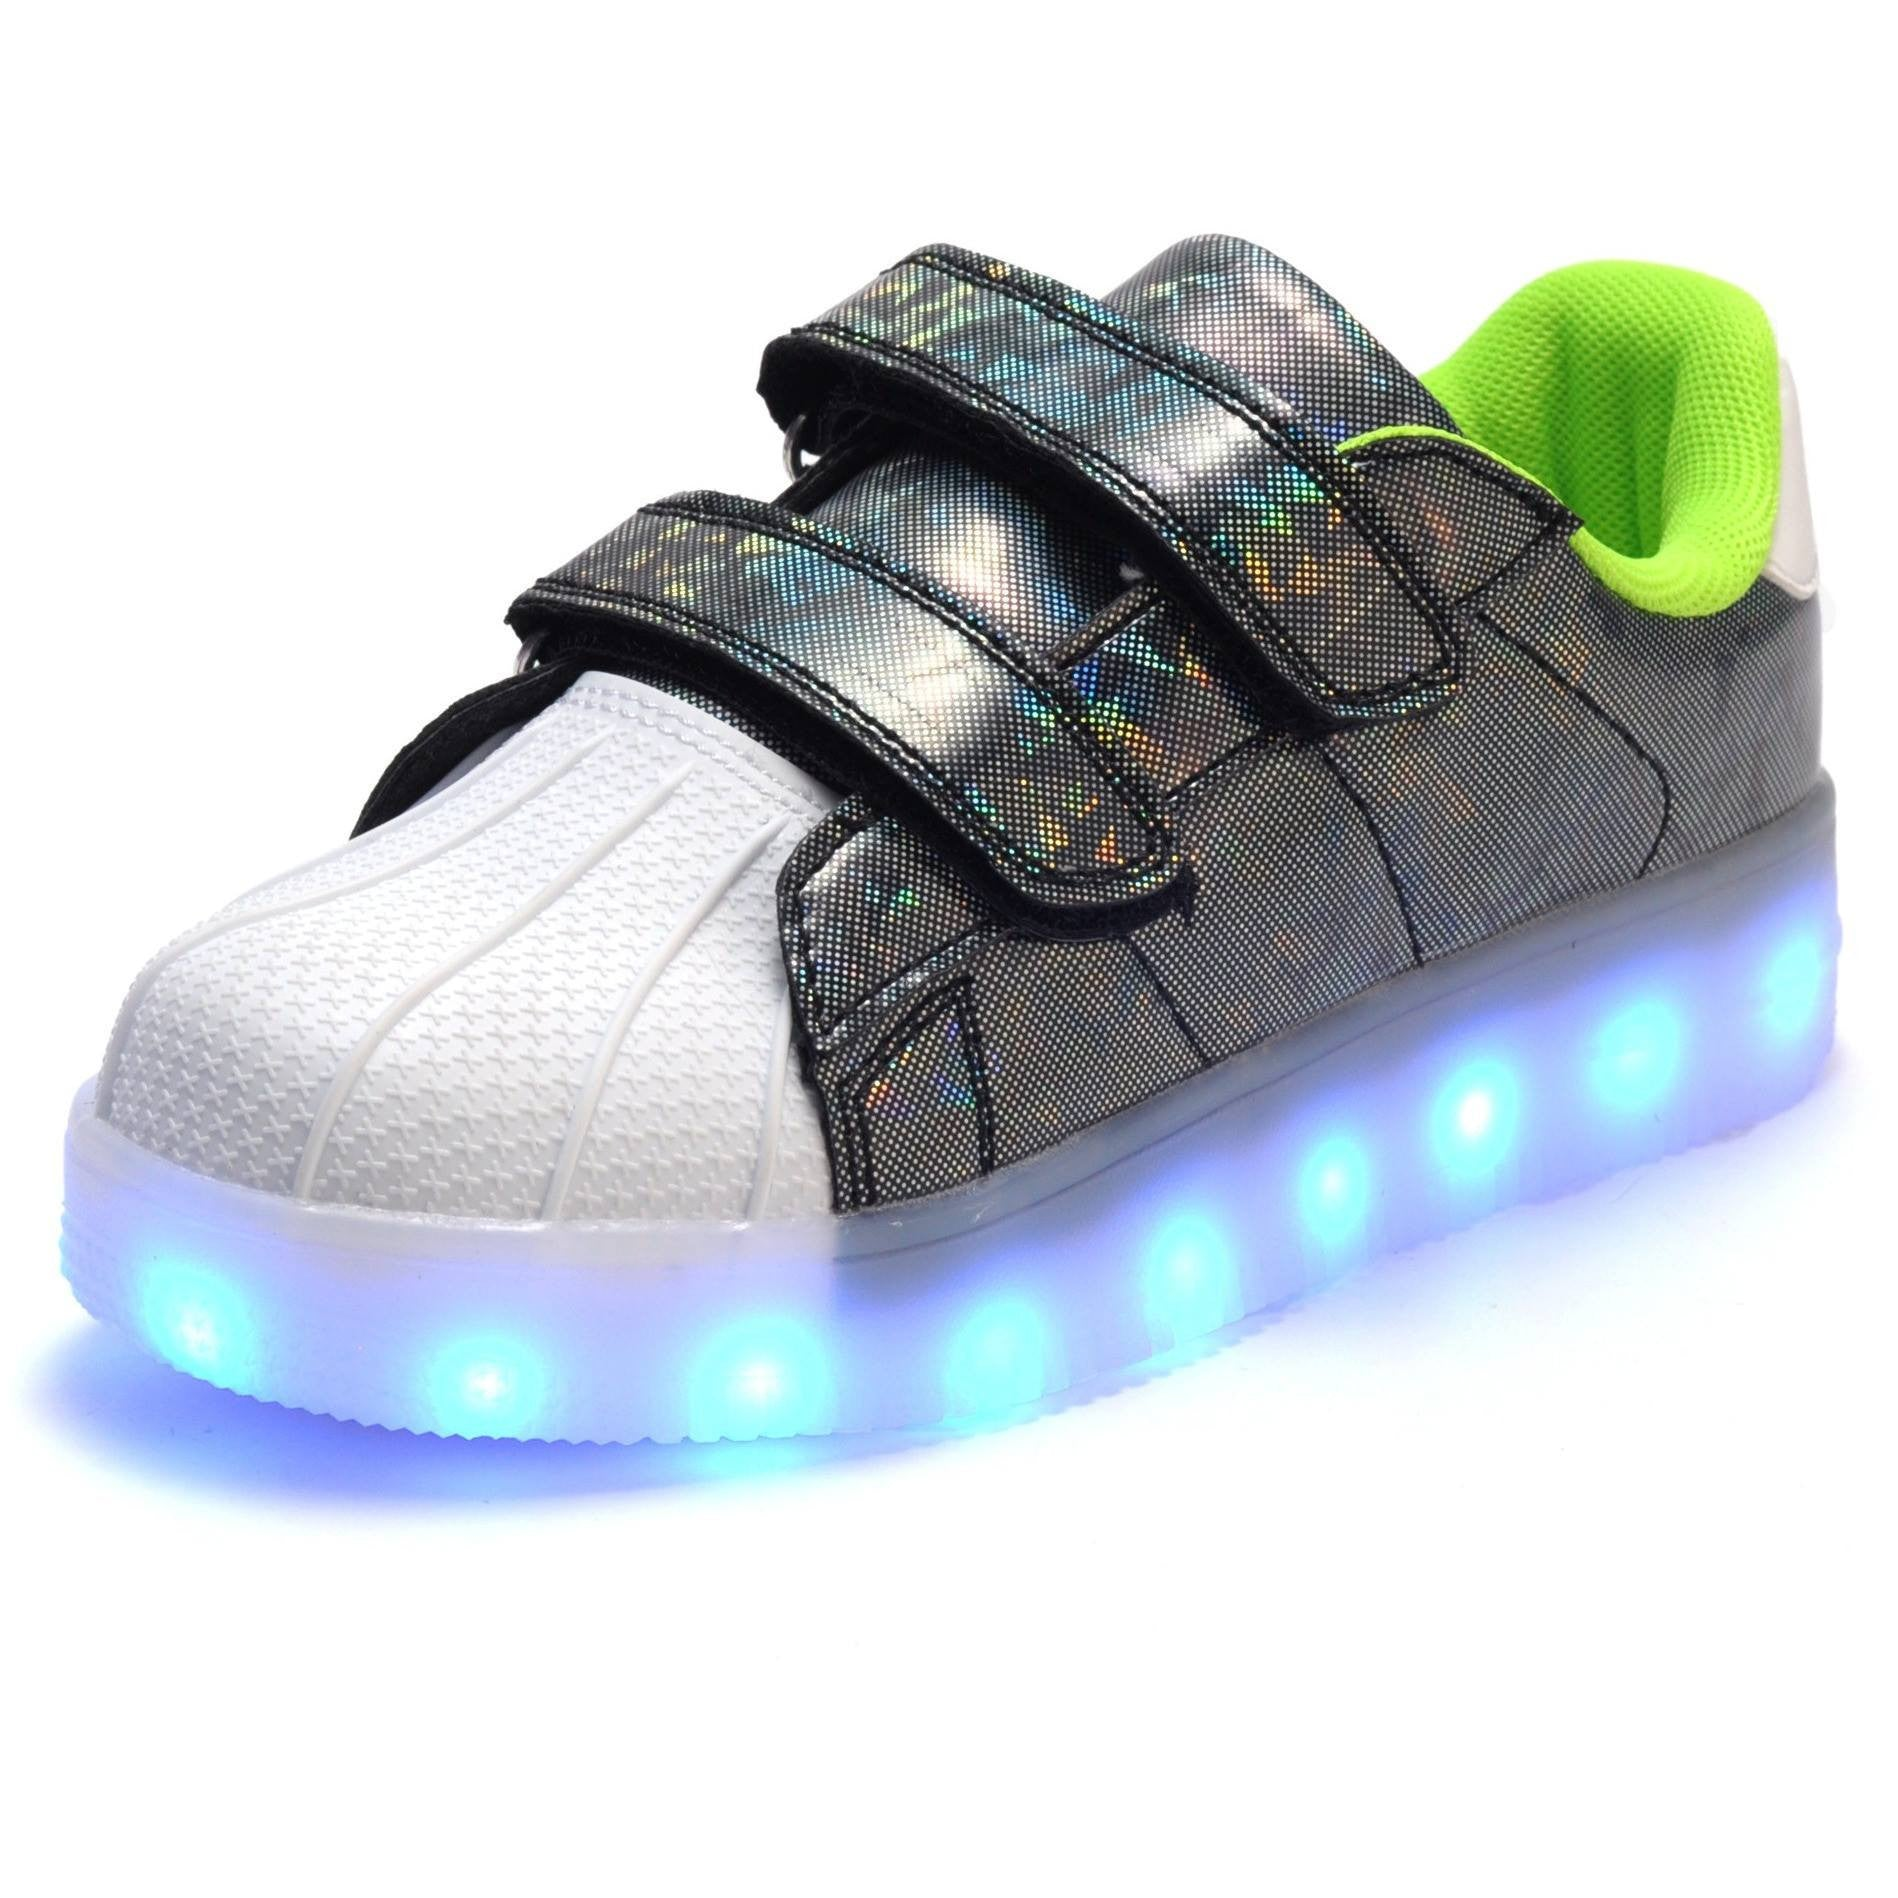 Kids Green Hologram LED Light Up Shoes - Rave Rebel